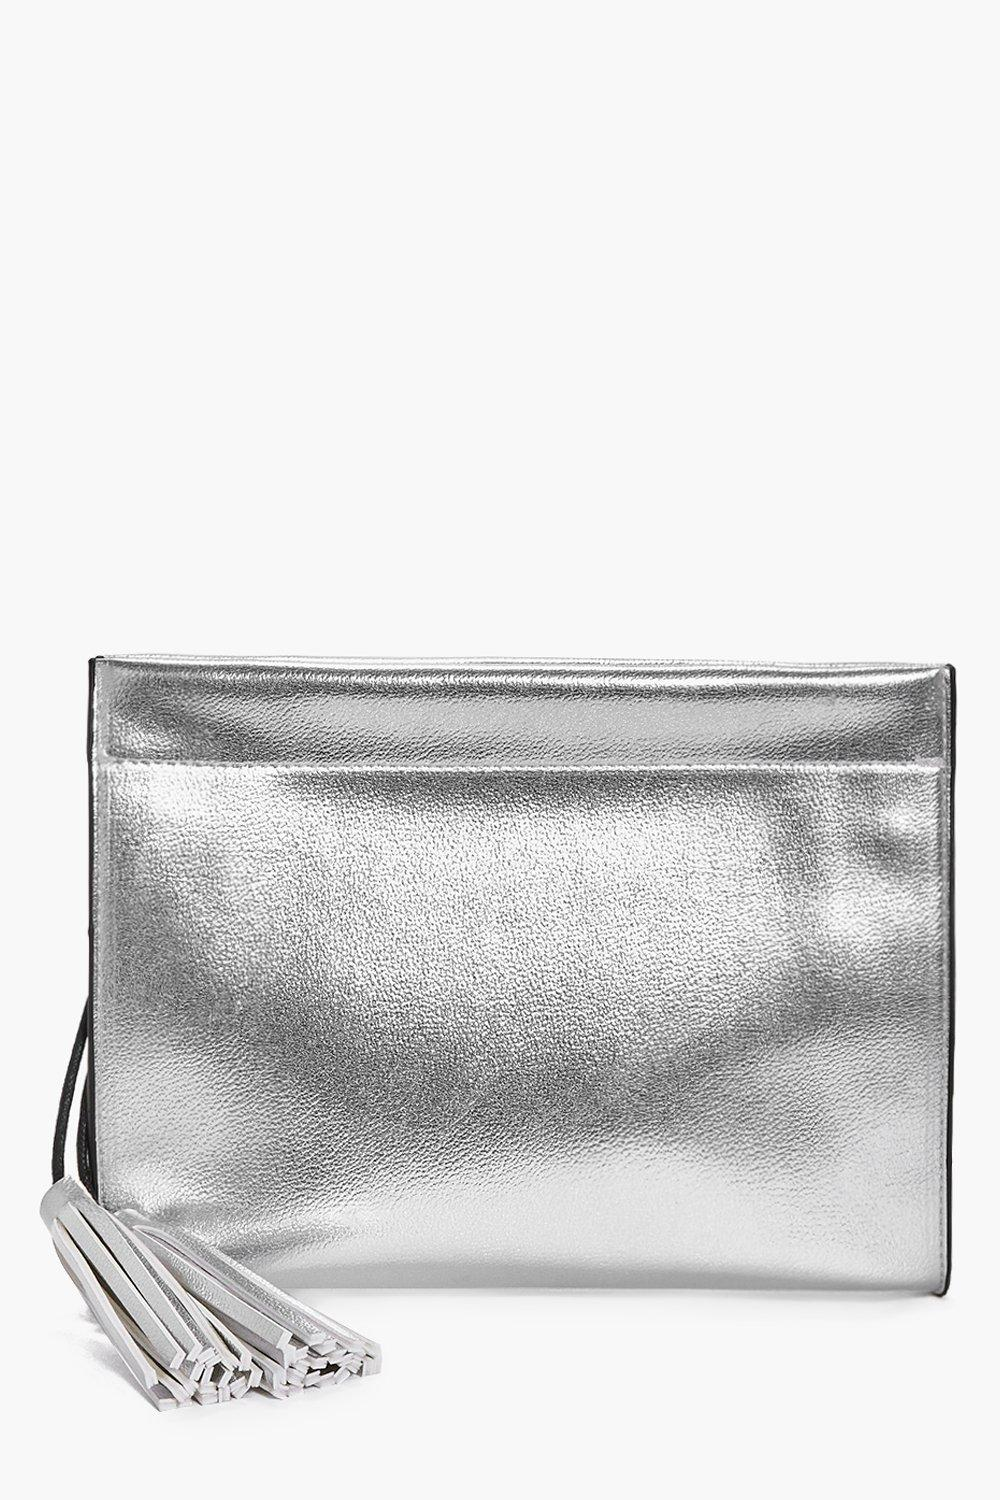 Maisy Metallic Structured Clutch Bag